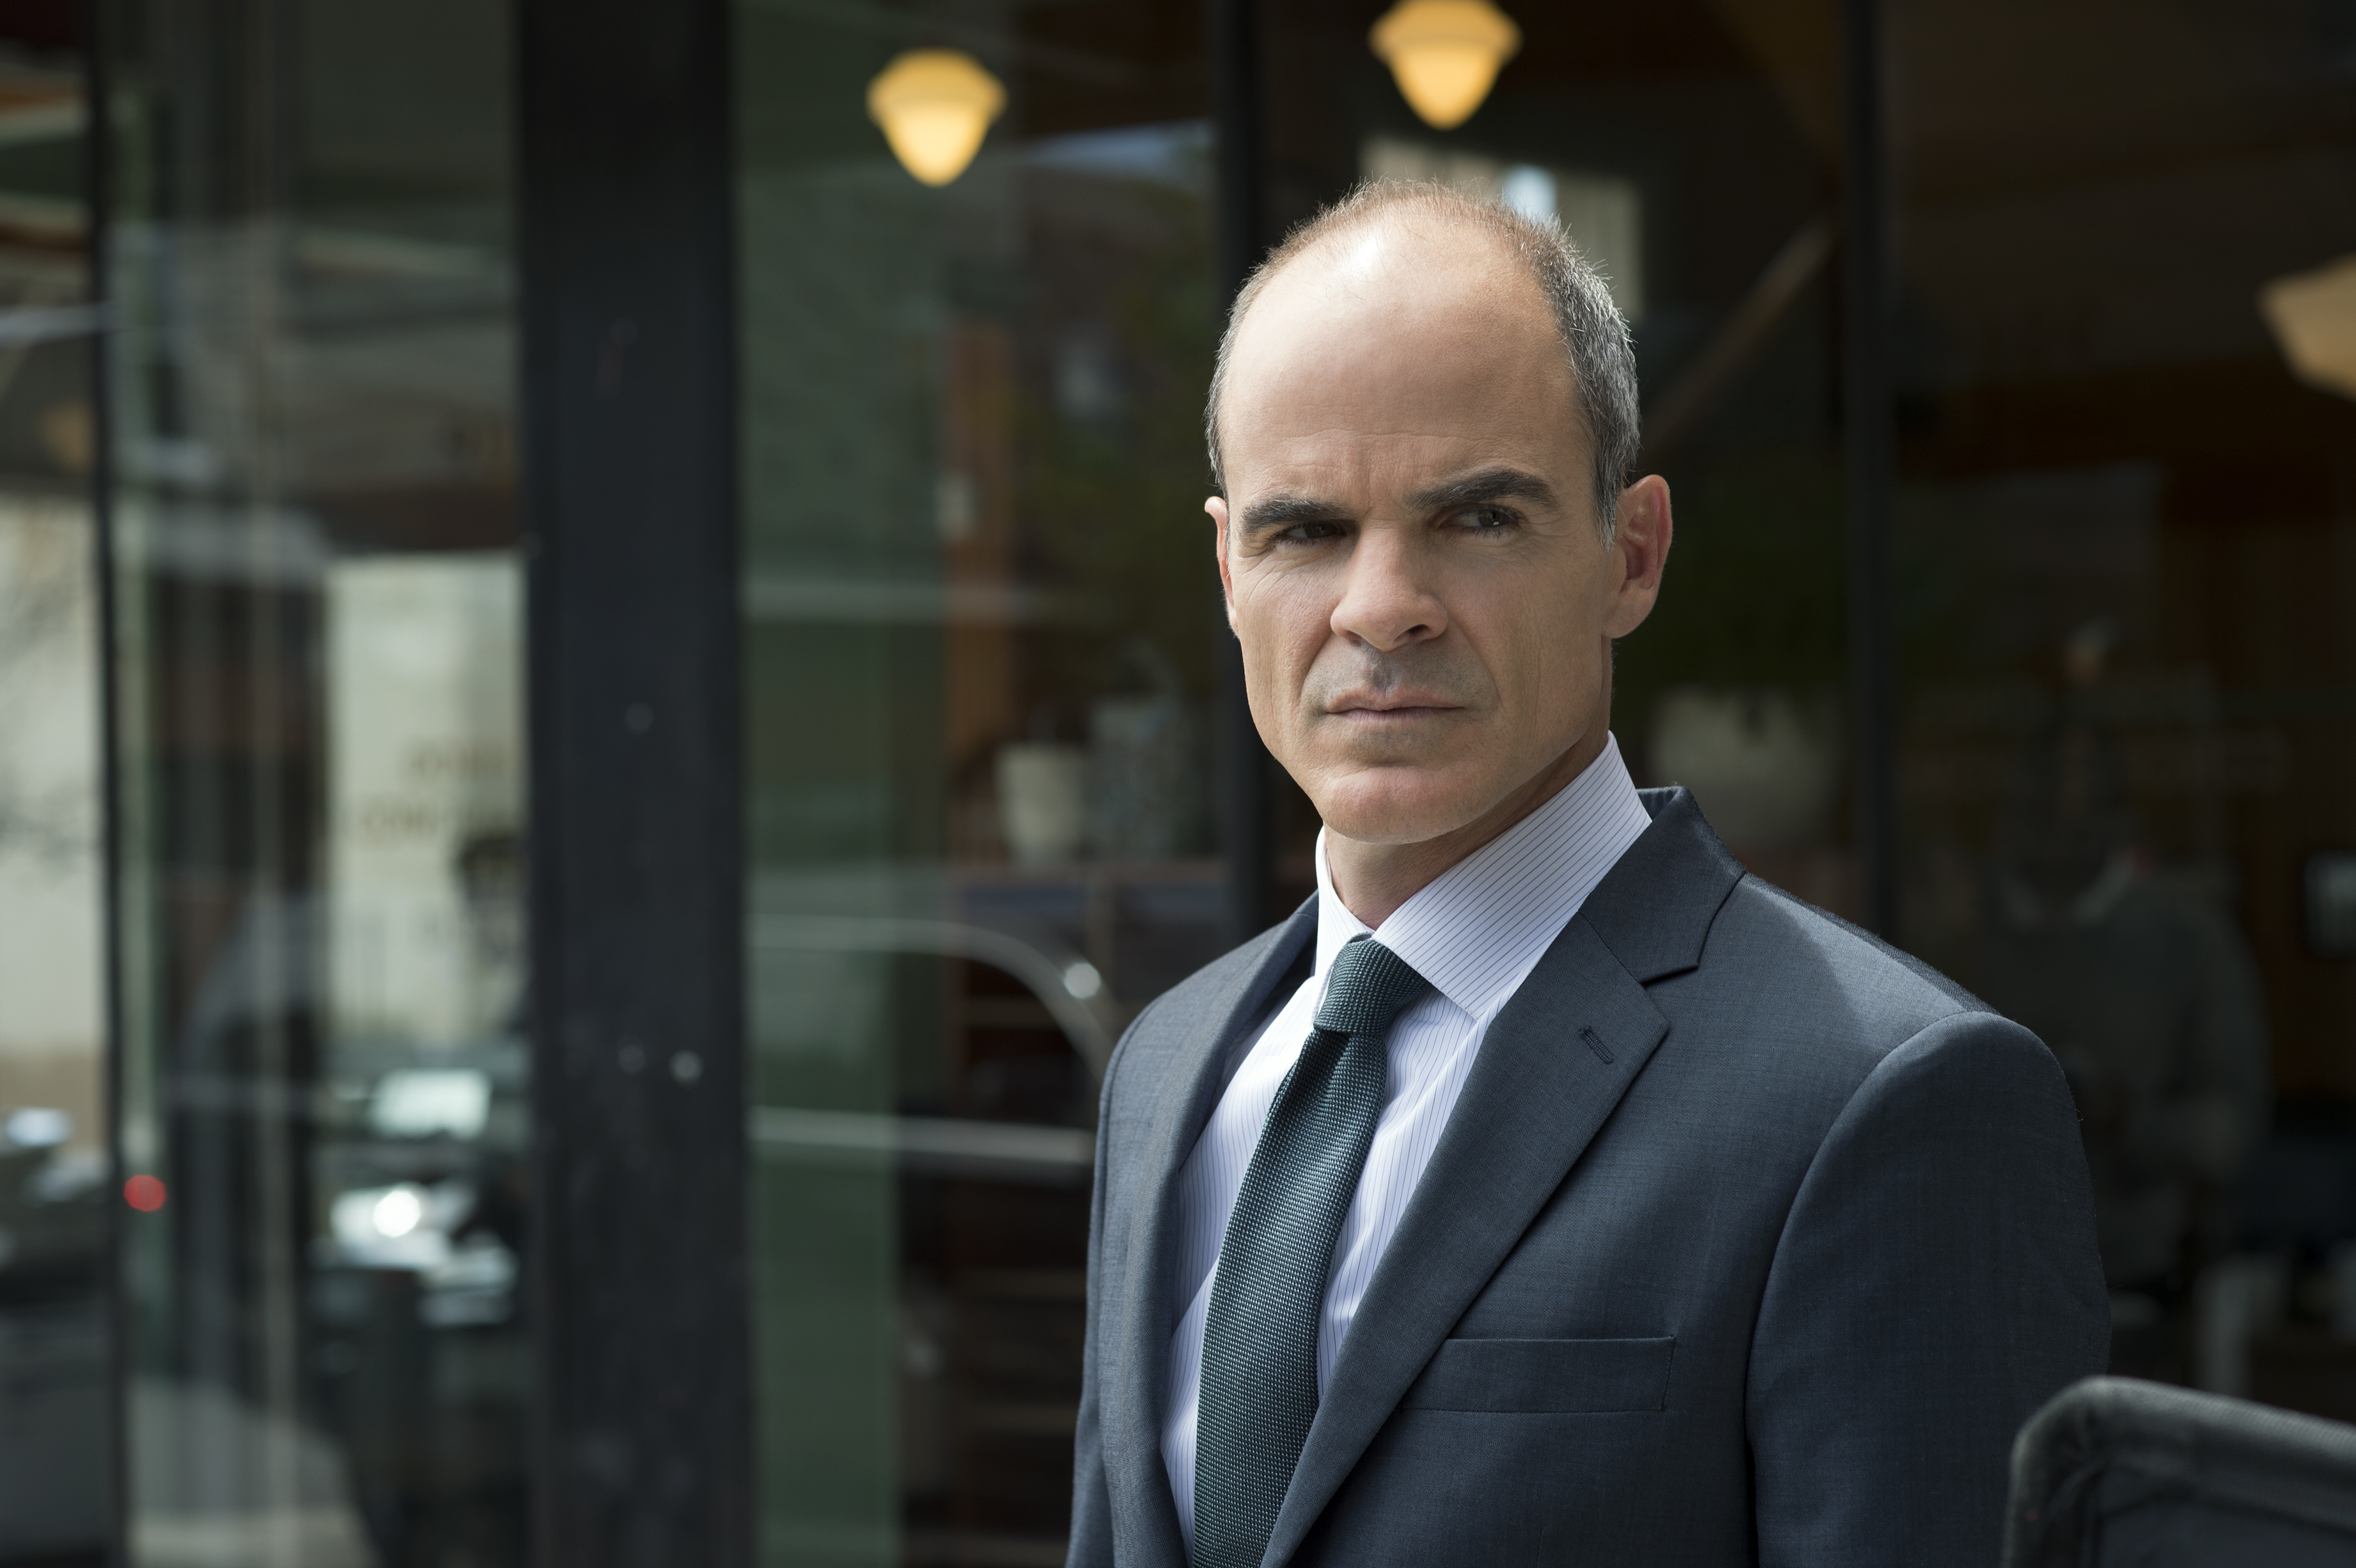 Michael Kelly as Doug Stamper in House of Cards